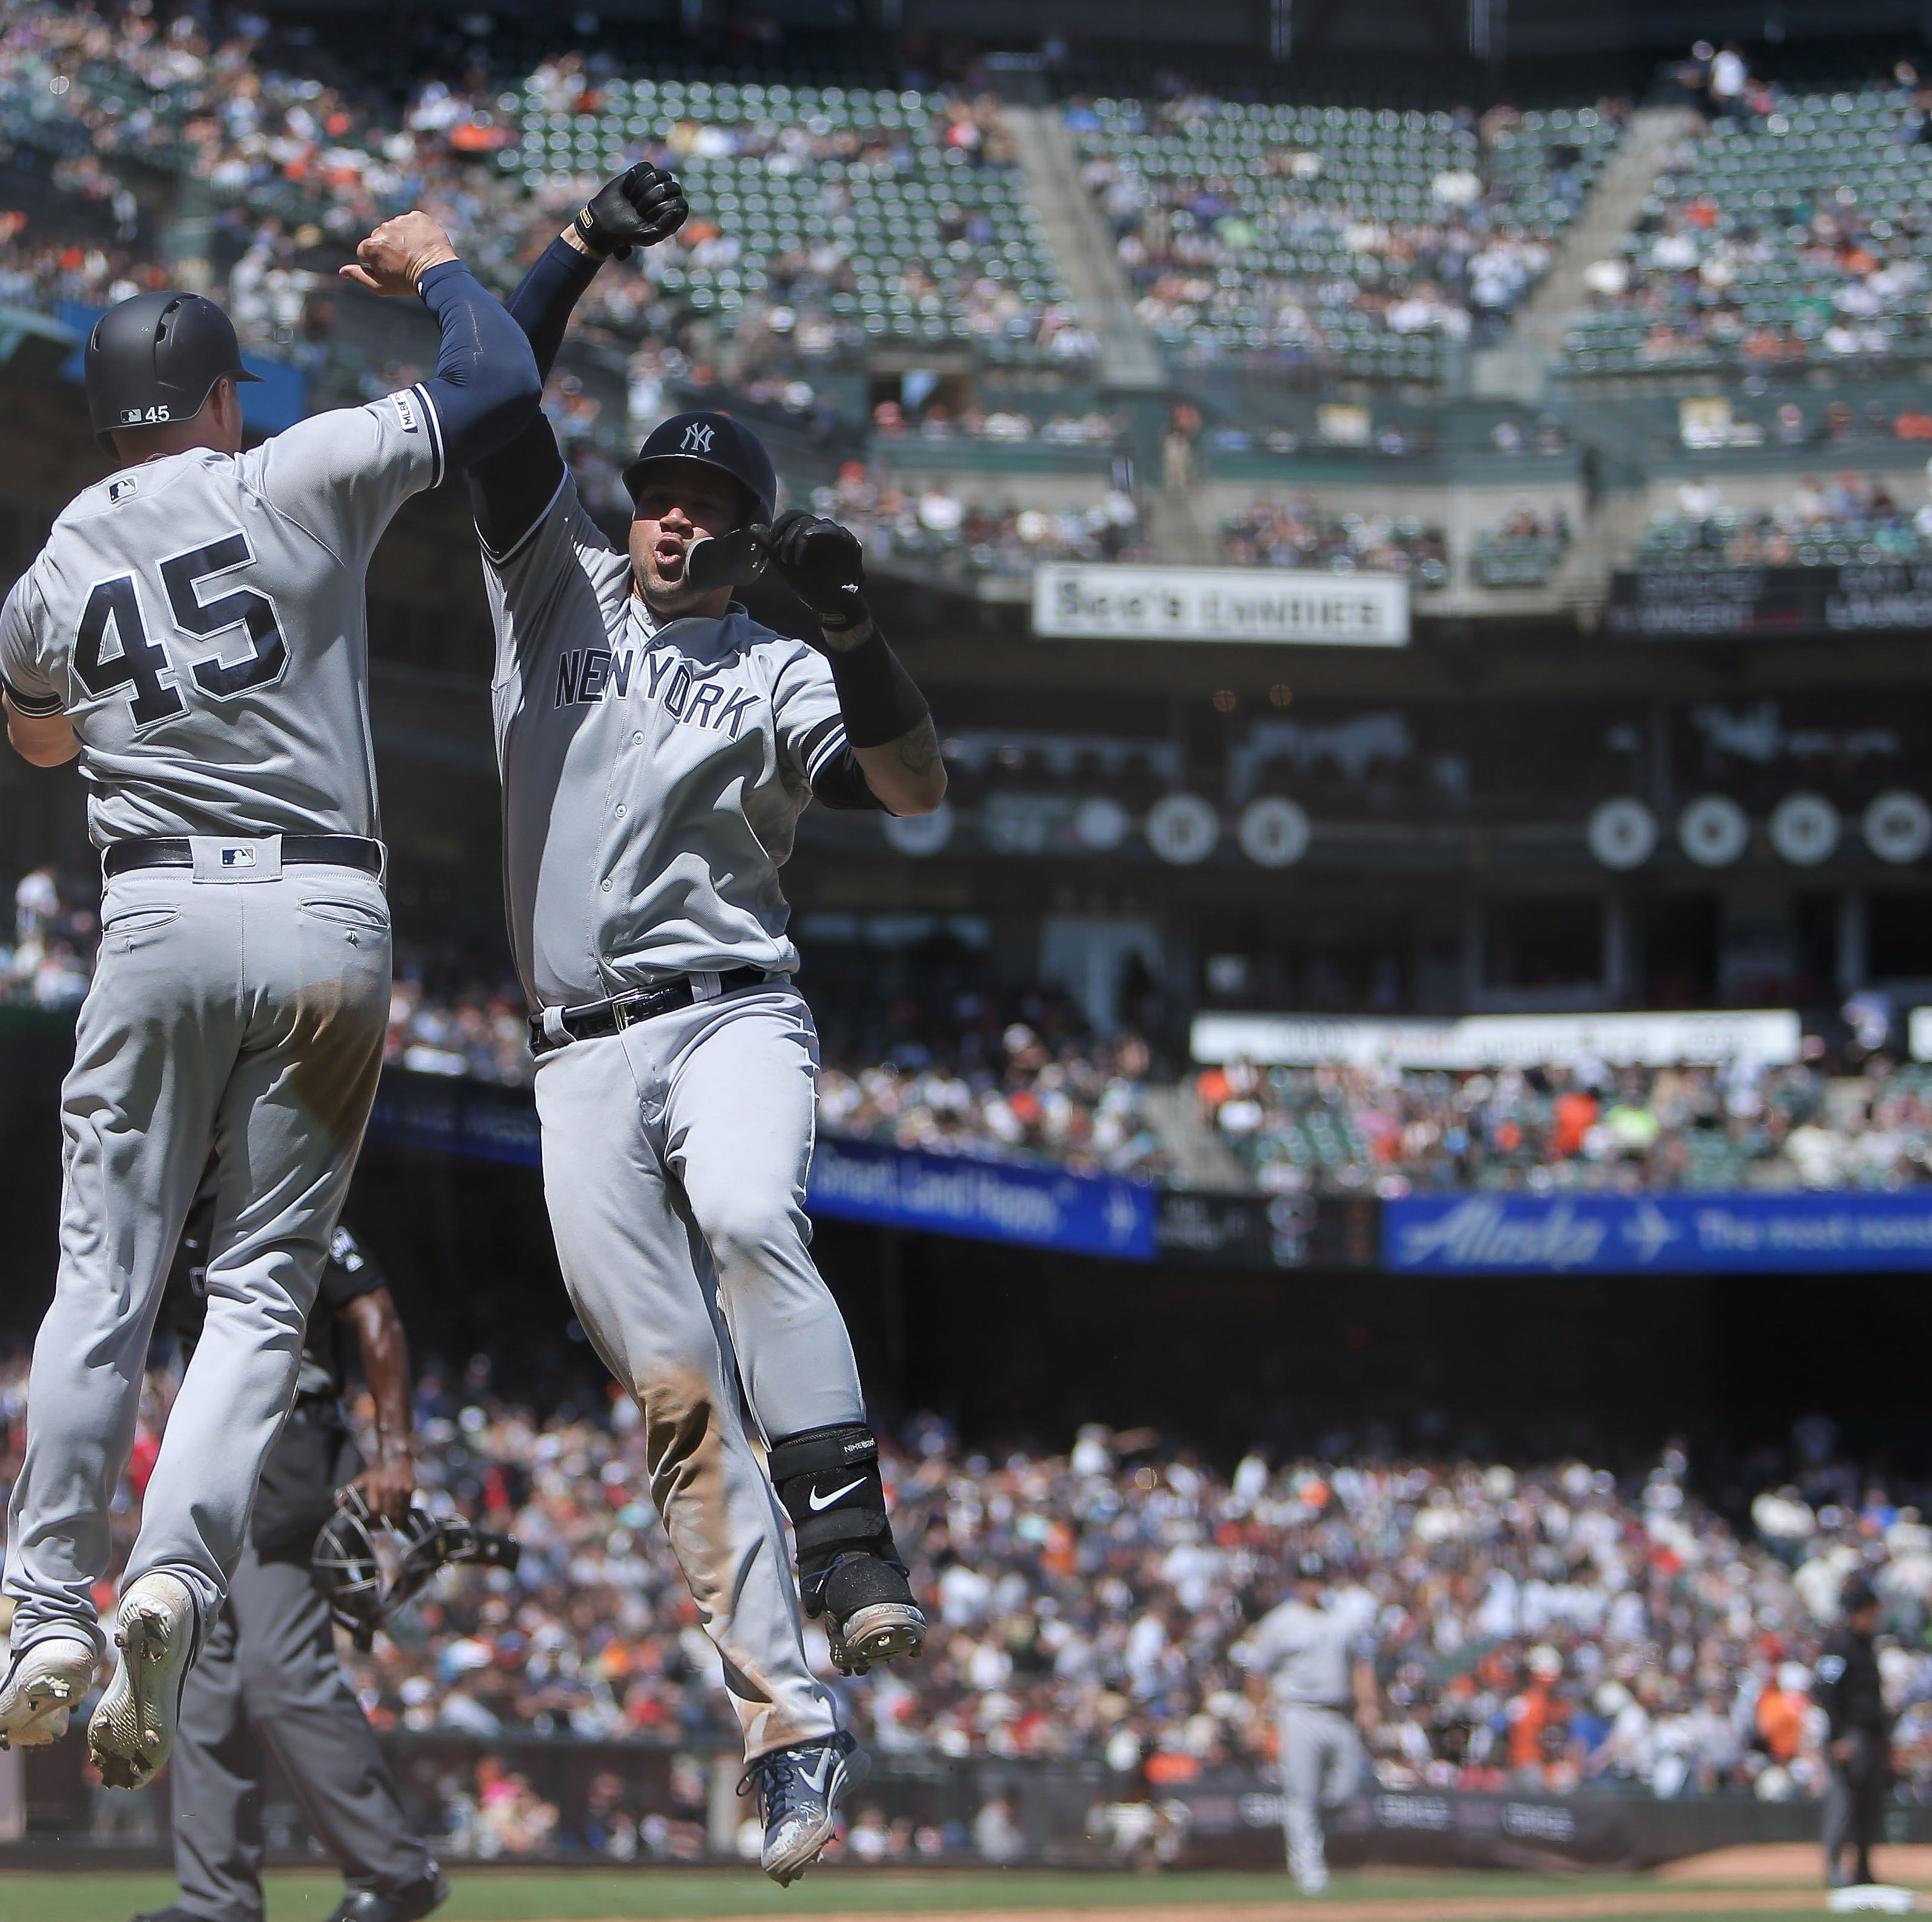 Yankees complete sweep of Giants, but more injuries mount